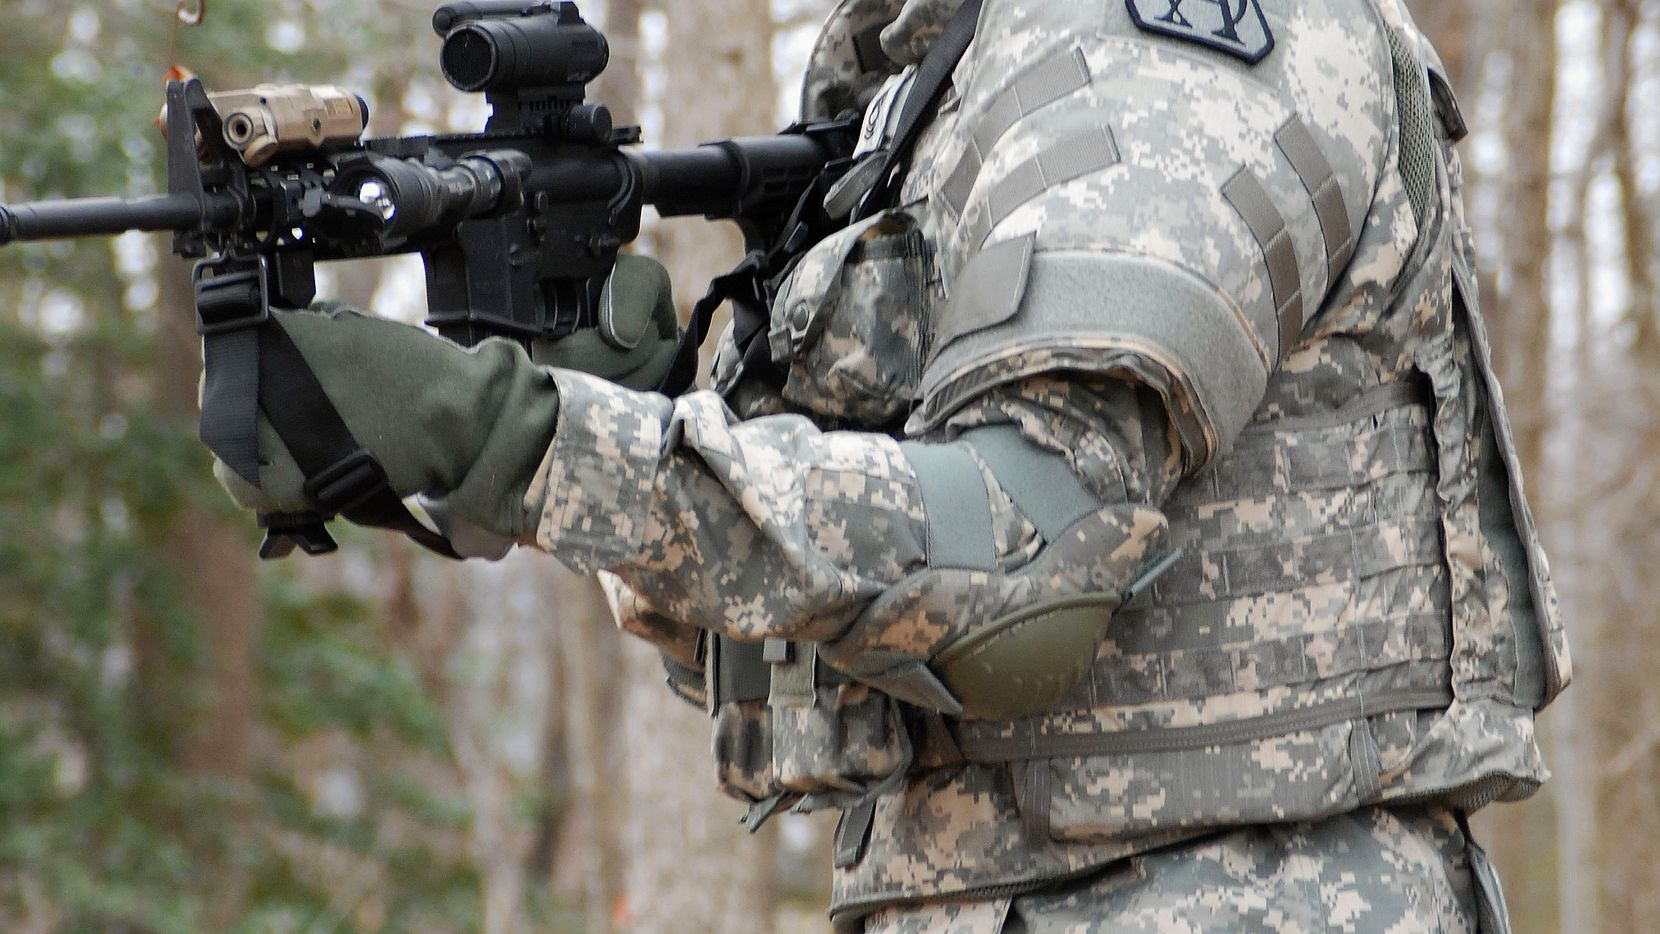 """The Army says it wants to """"own the night"""" with technology such as enhanced night vision goggles and binocular-style goggles with infrared and thermal imaging capabilities. (Army.mil)"""